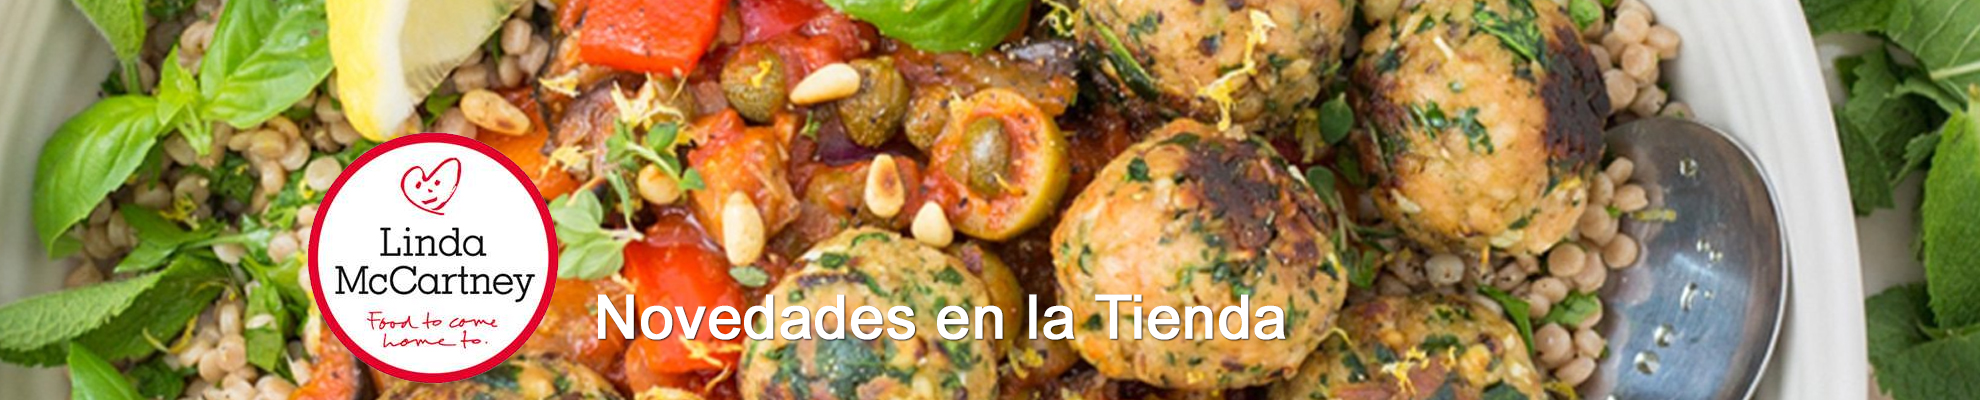 productos veganos linda mccartney